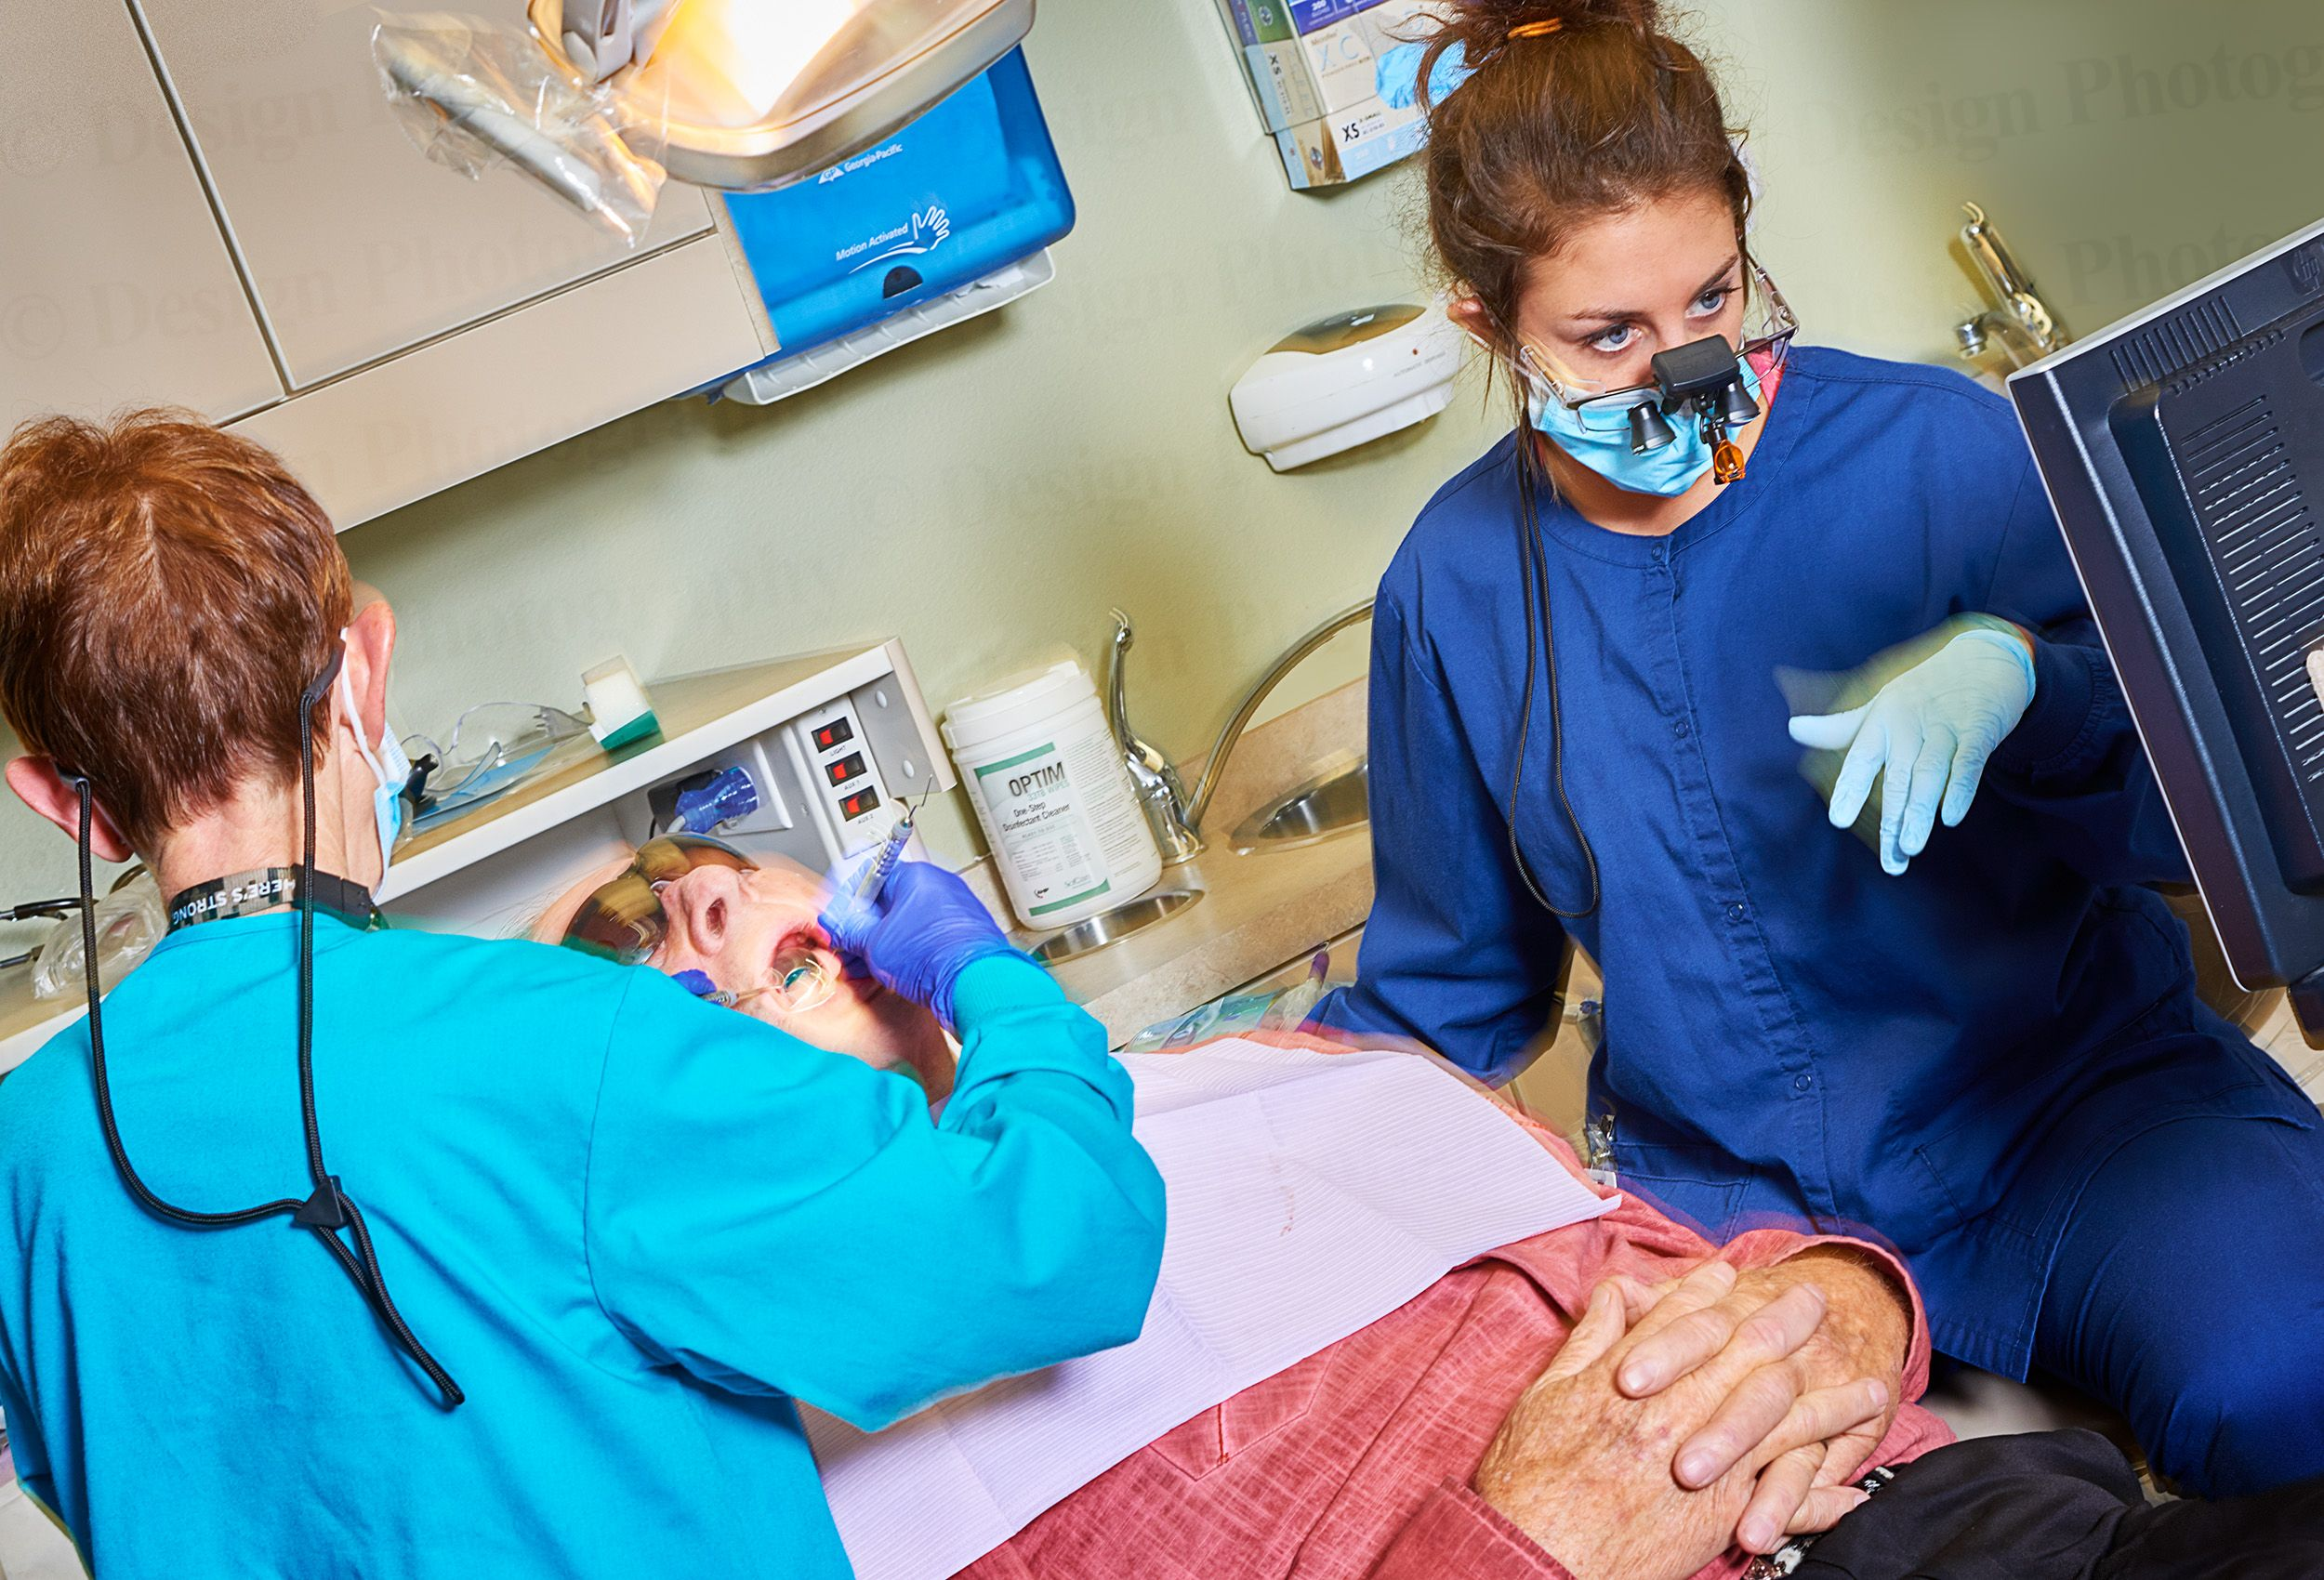 Dental hygienist teacher and student working on a patient at Hawkeye Community College